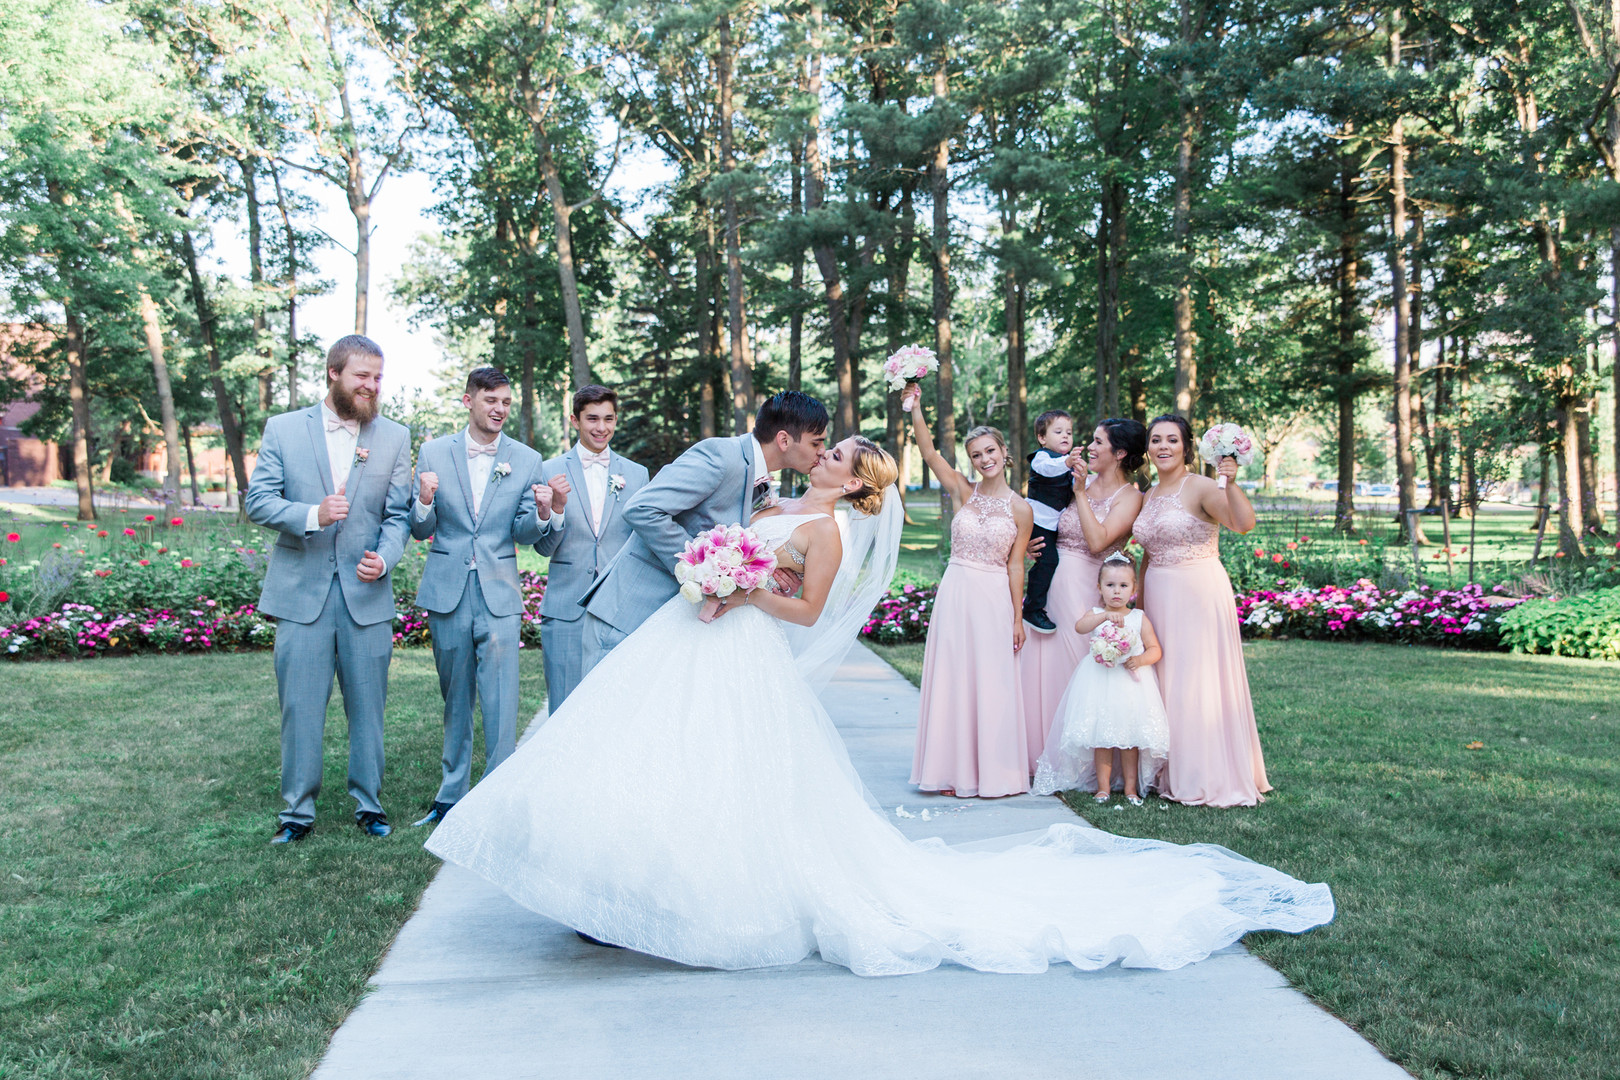 bride and groom dip for a kiss with bridal party cheering in background - fun bridal party pose